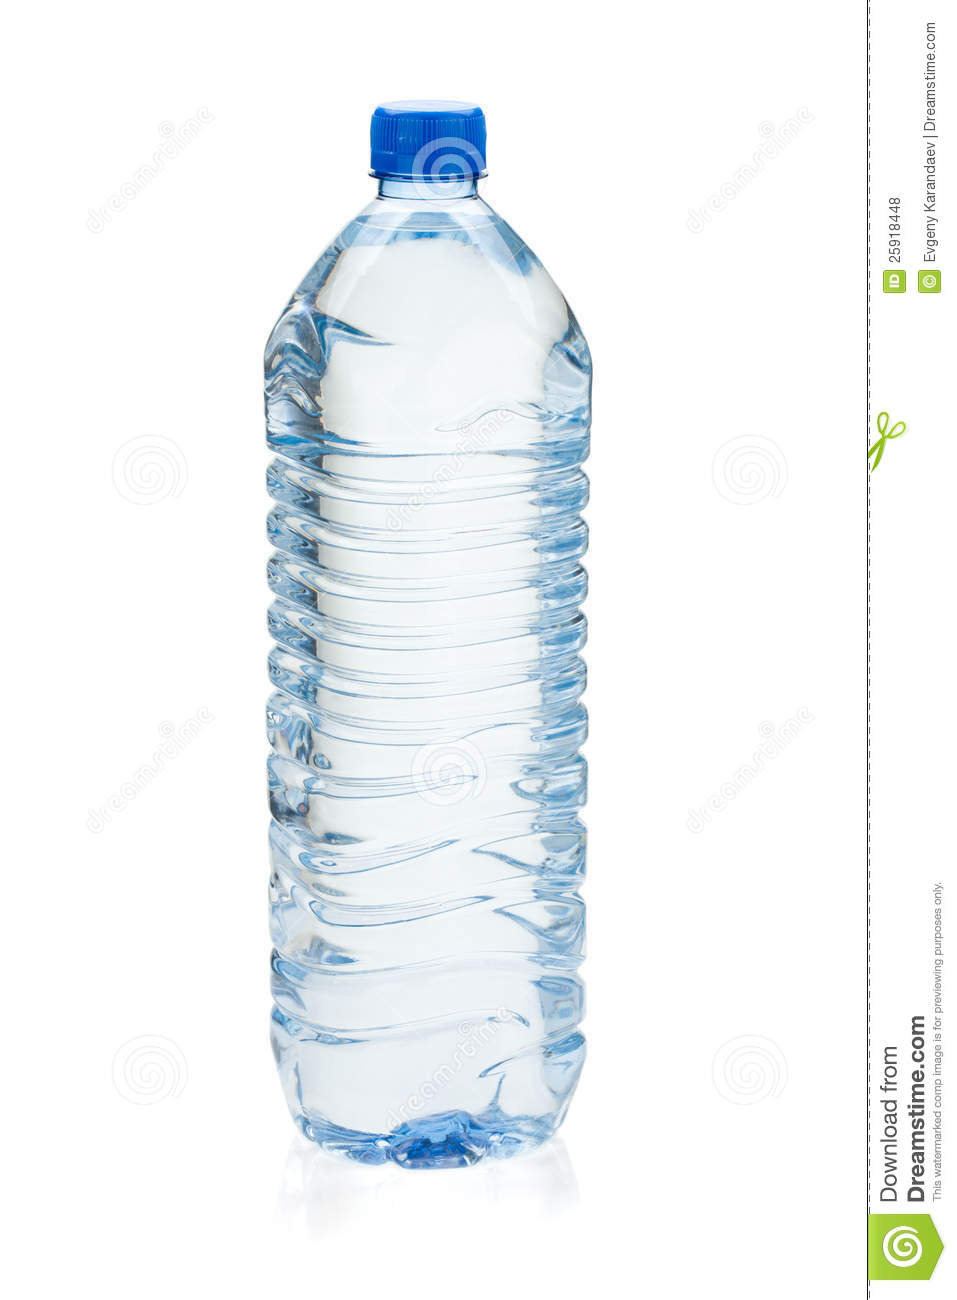 Soda Water Bottle Royalty Free Stock Photos - Image: 25918448